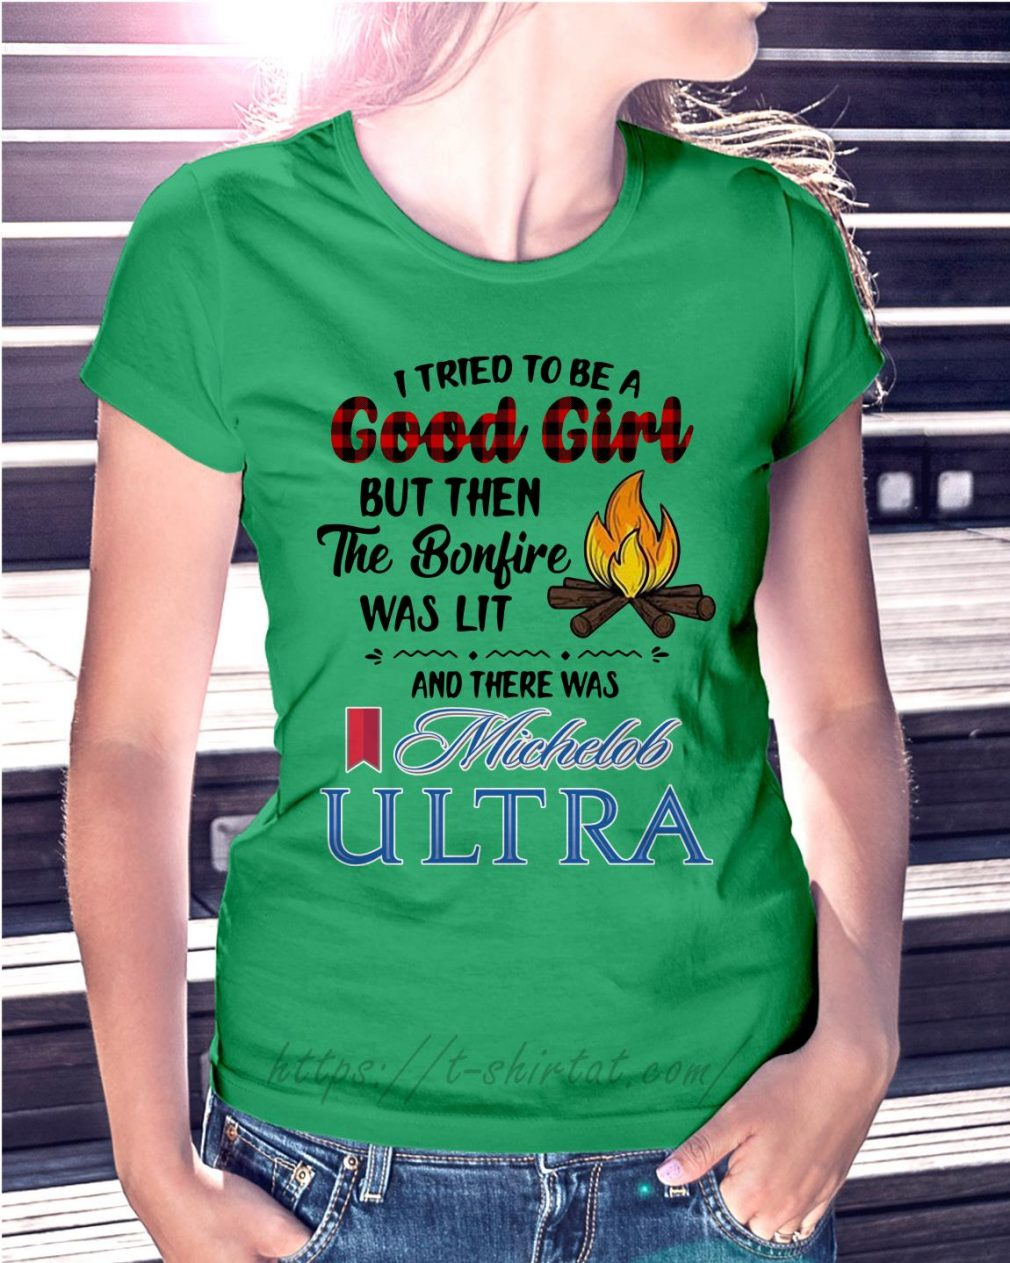 The bonfire was lit and there was Michelob Ultra Ladies Tee green